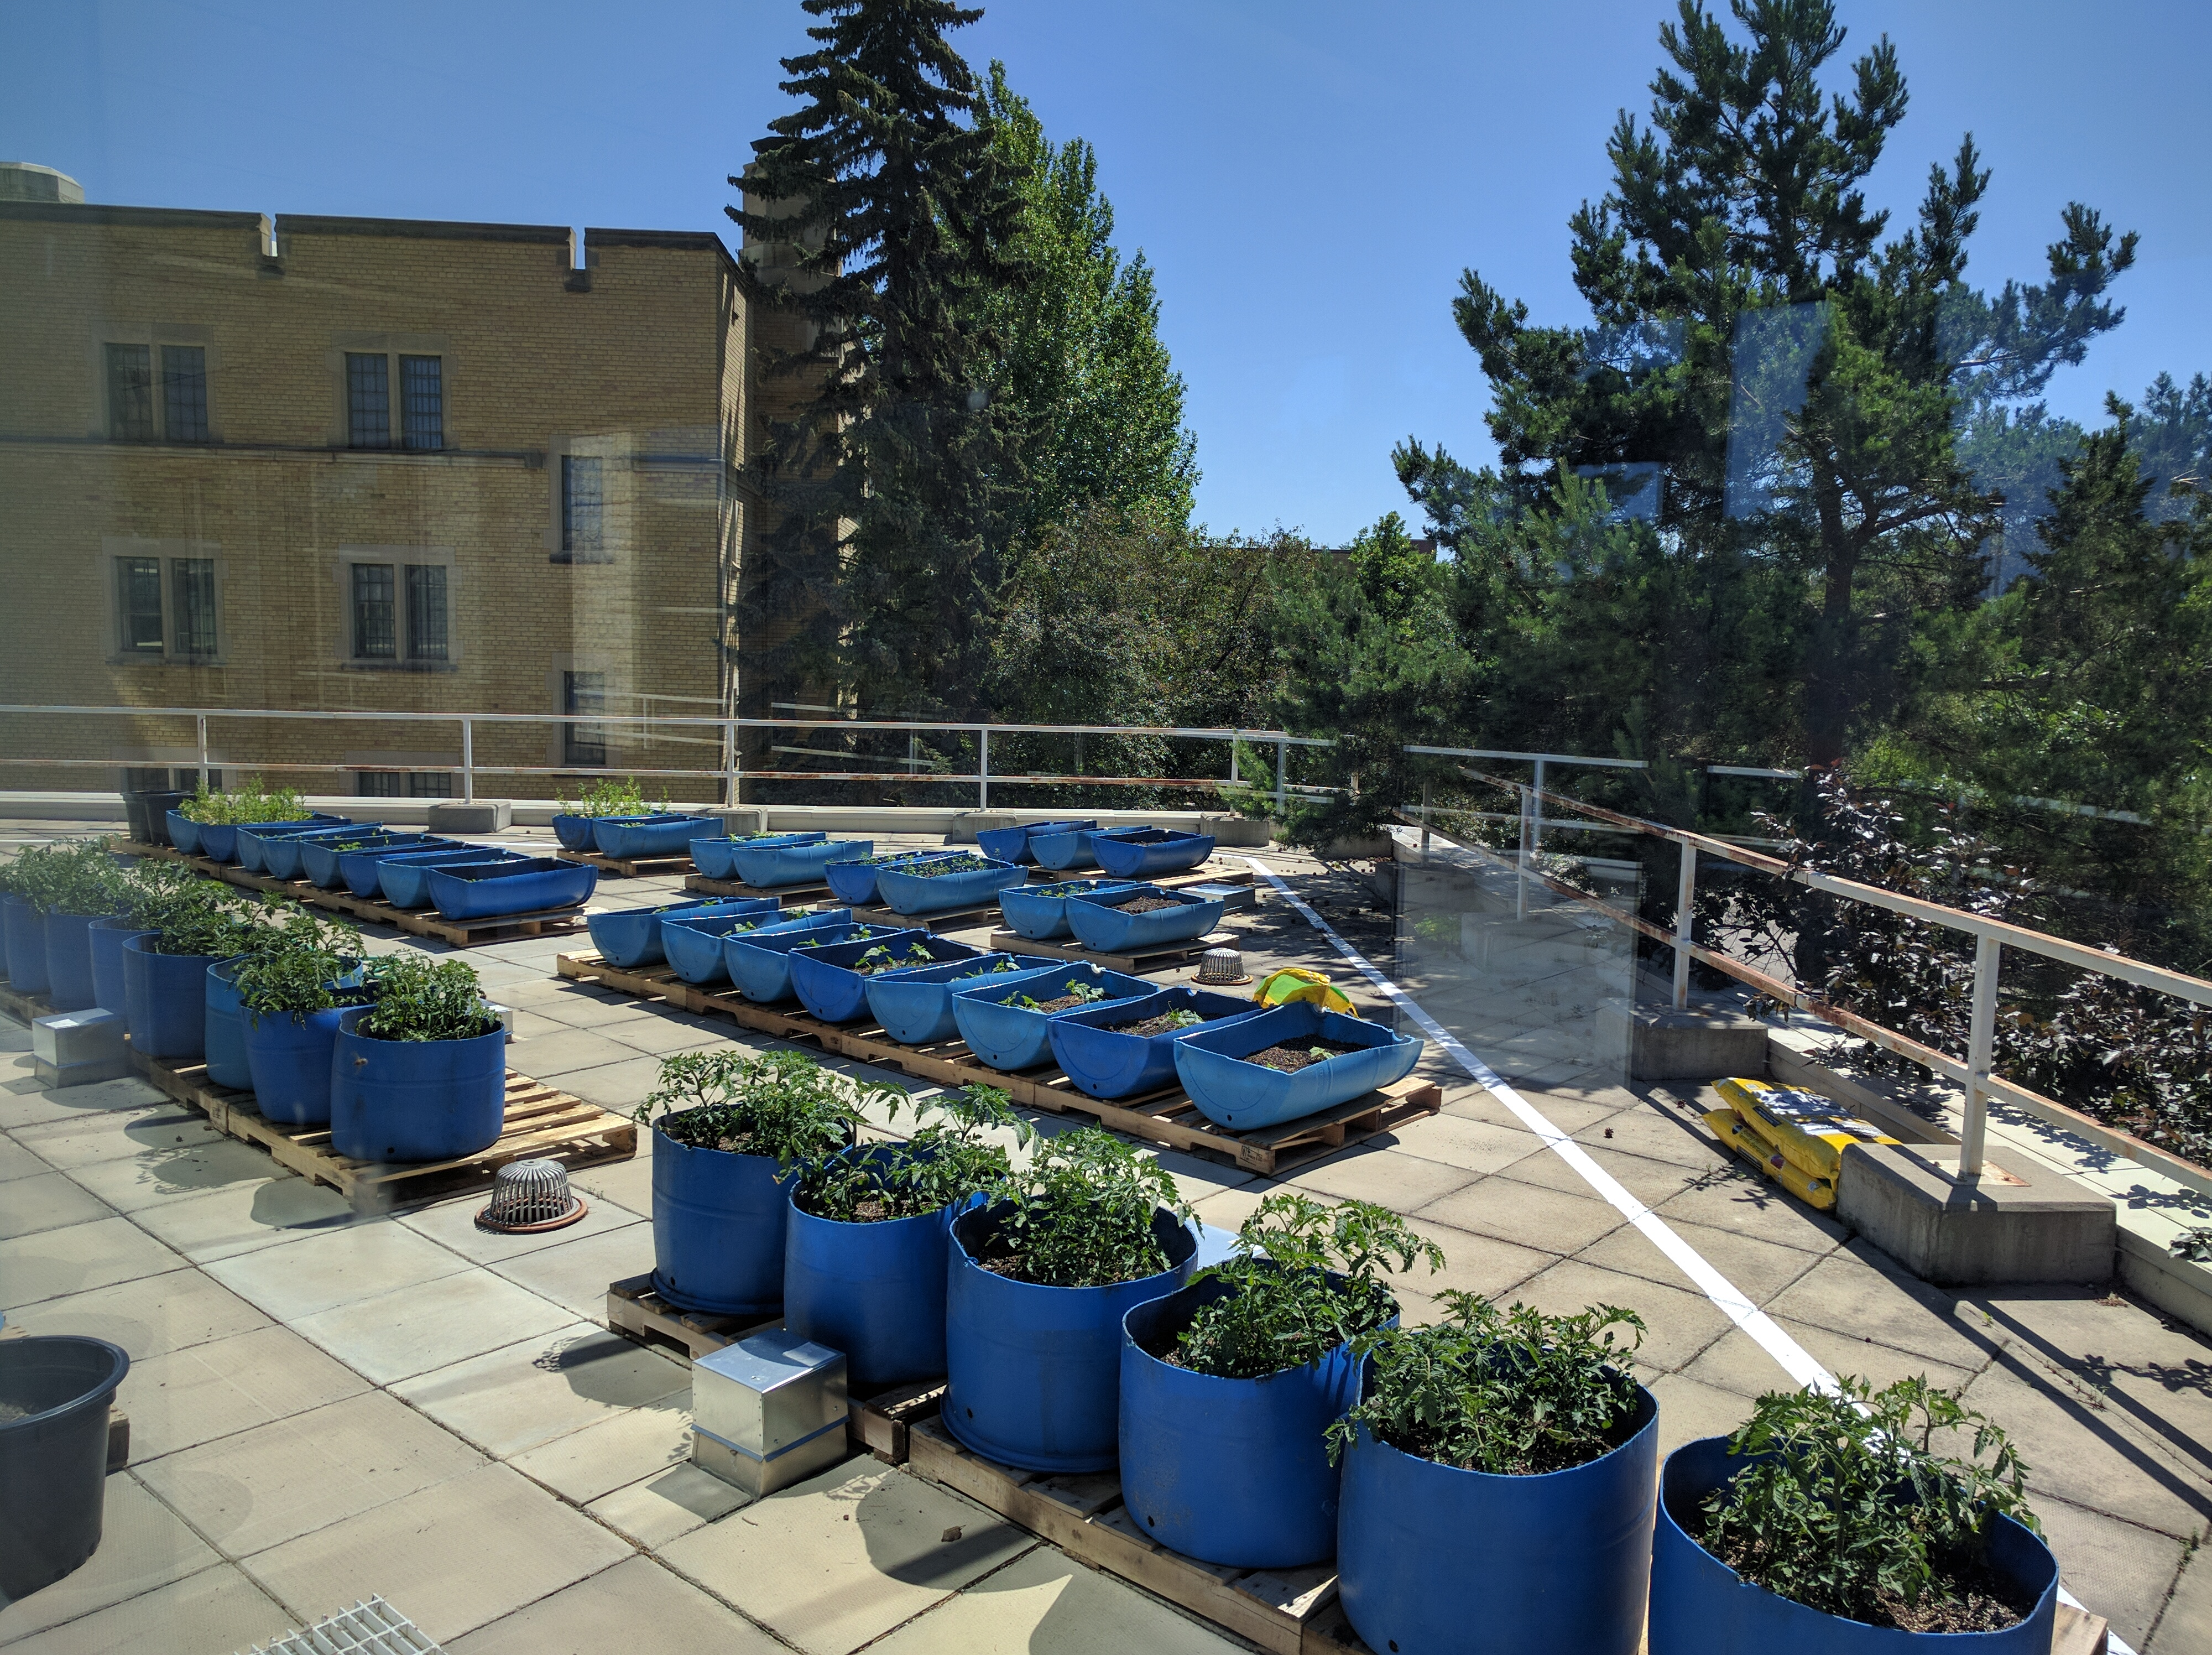 The RoofTop urban agriculture garden